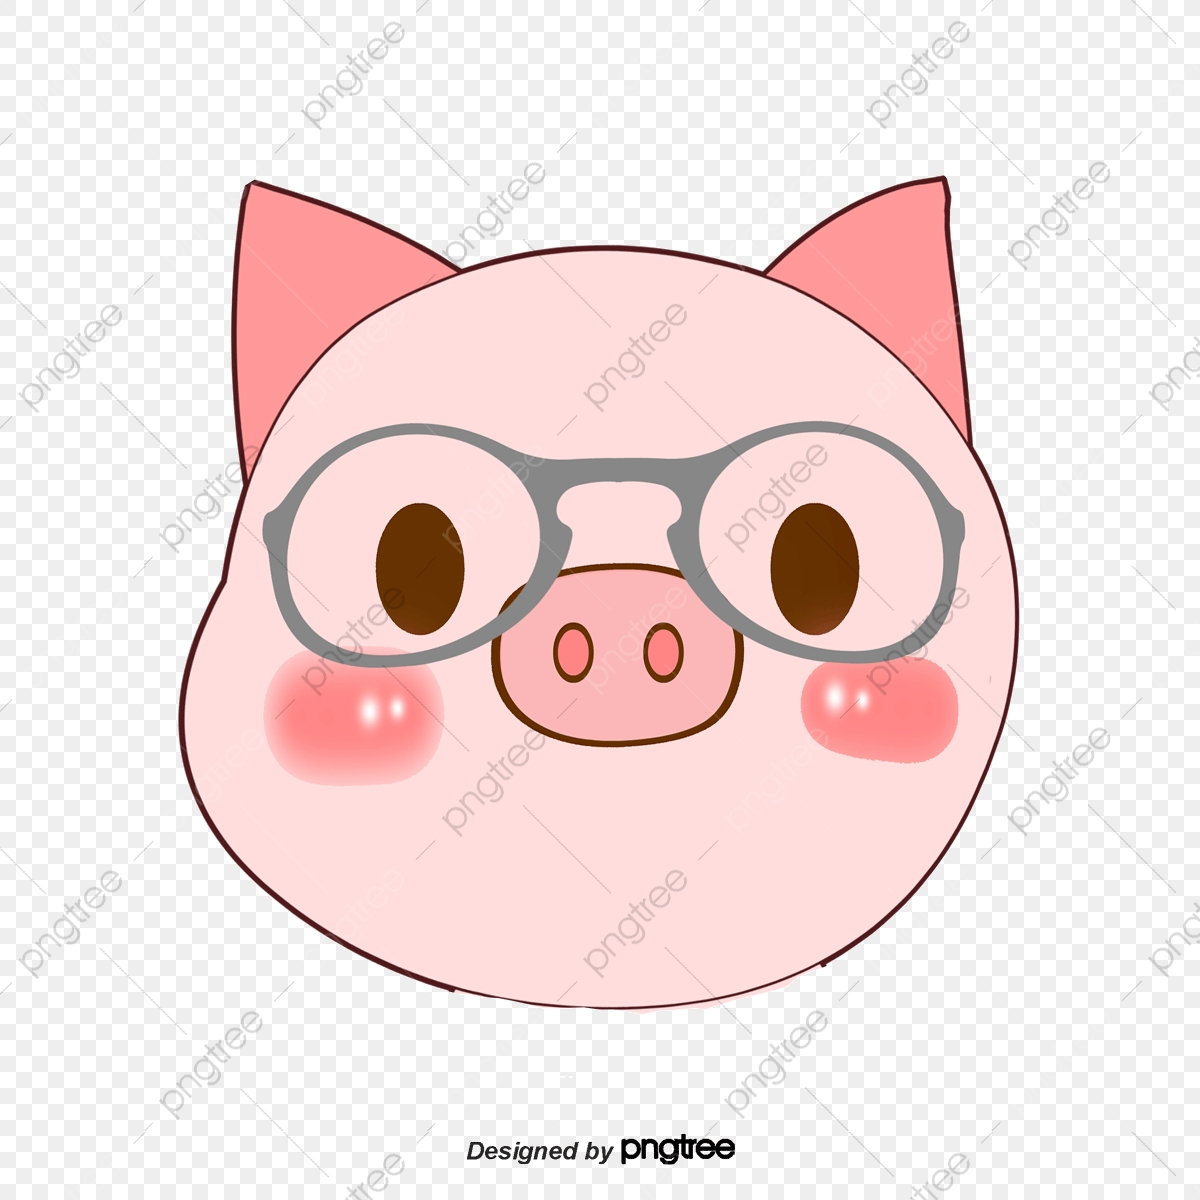 Pink Cartoon Pig Head, Cartoon Clipart, Pig Clipart, Head Clipart.